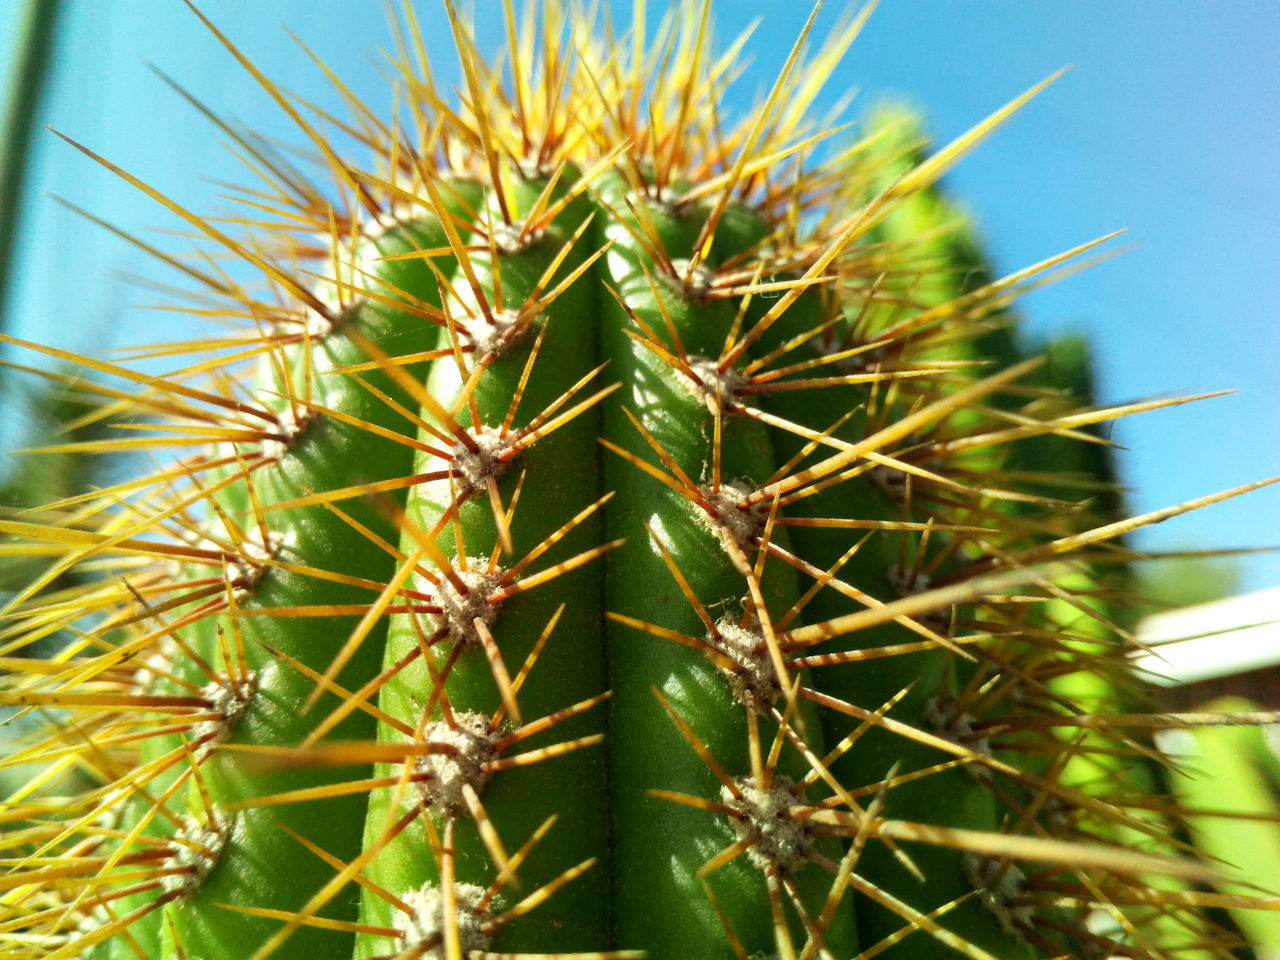 Don't touch me. Growth Nature Close-up Plant Cactus Green Color Day Beauty In Nature Taking Photos Green Life On Stones Colors And Patterns